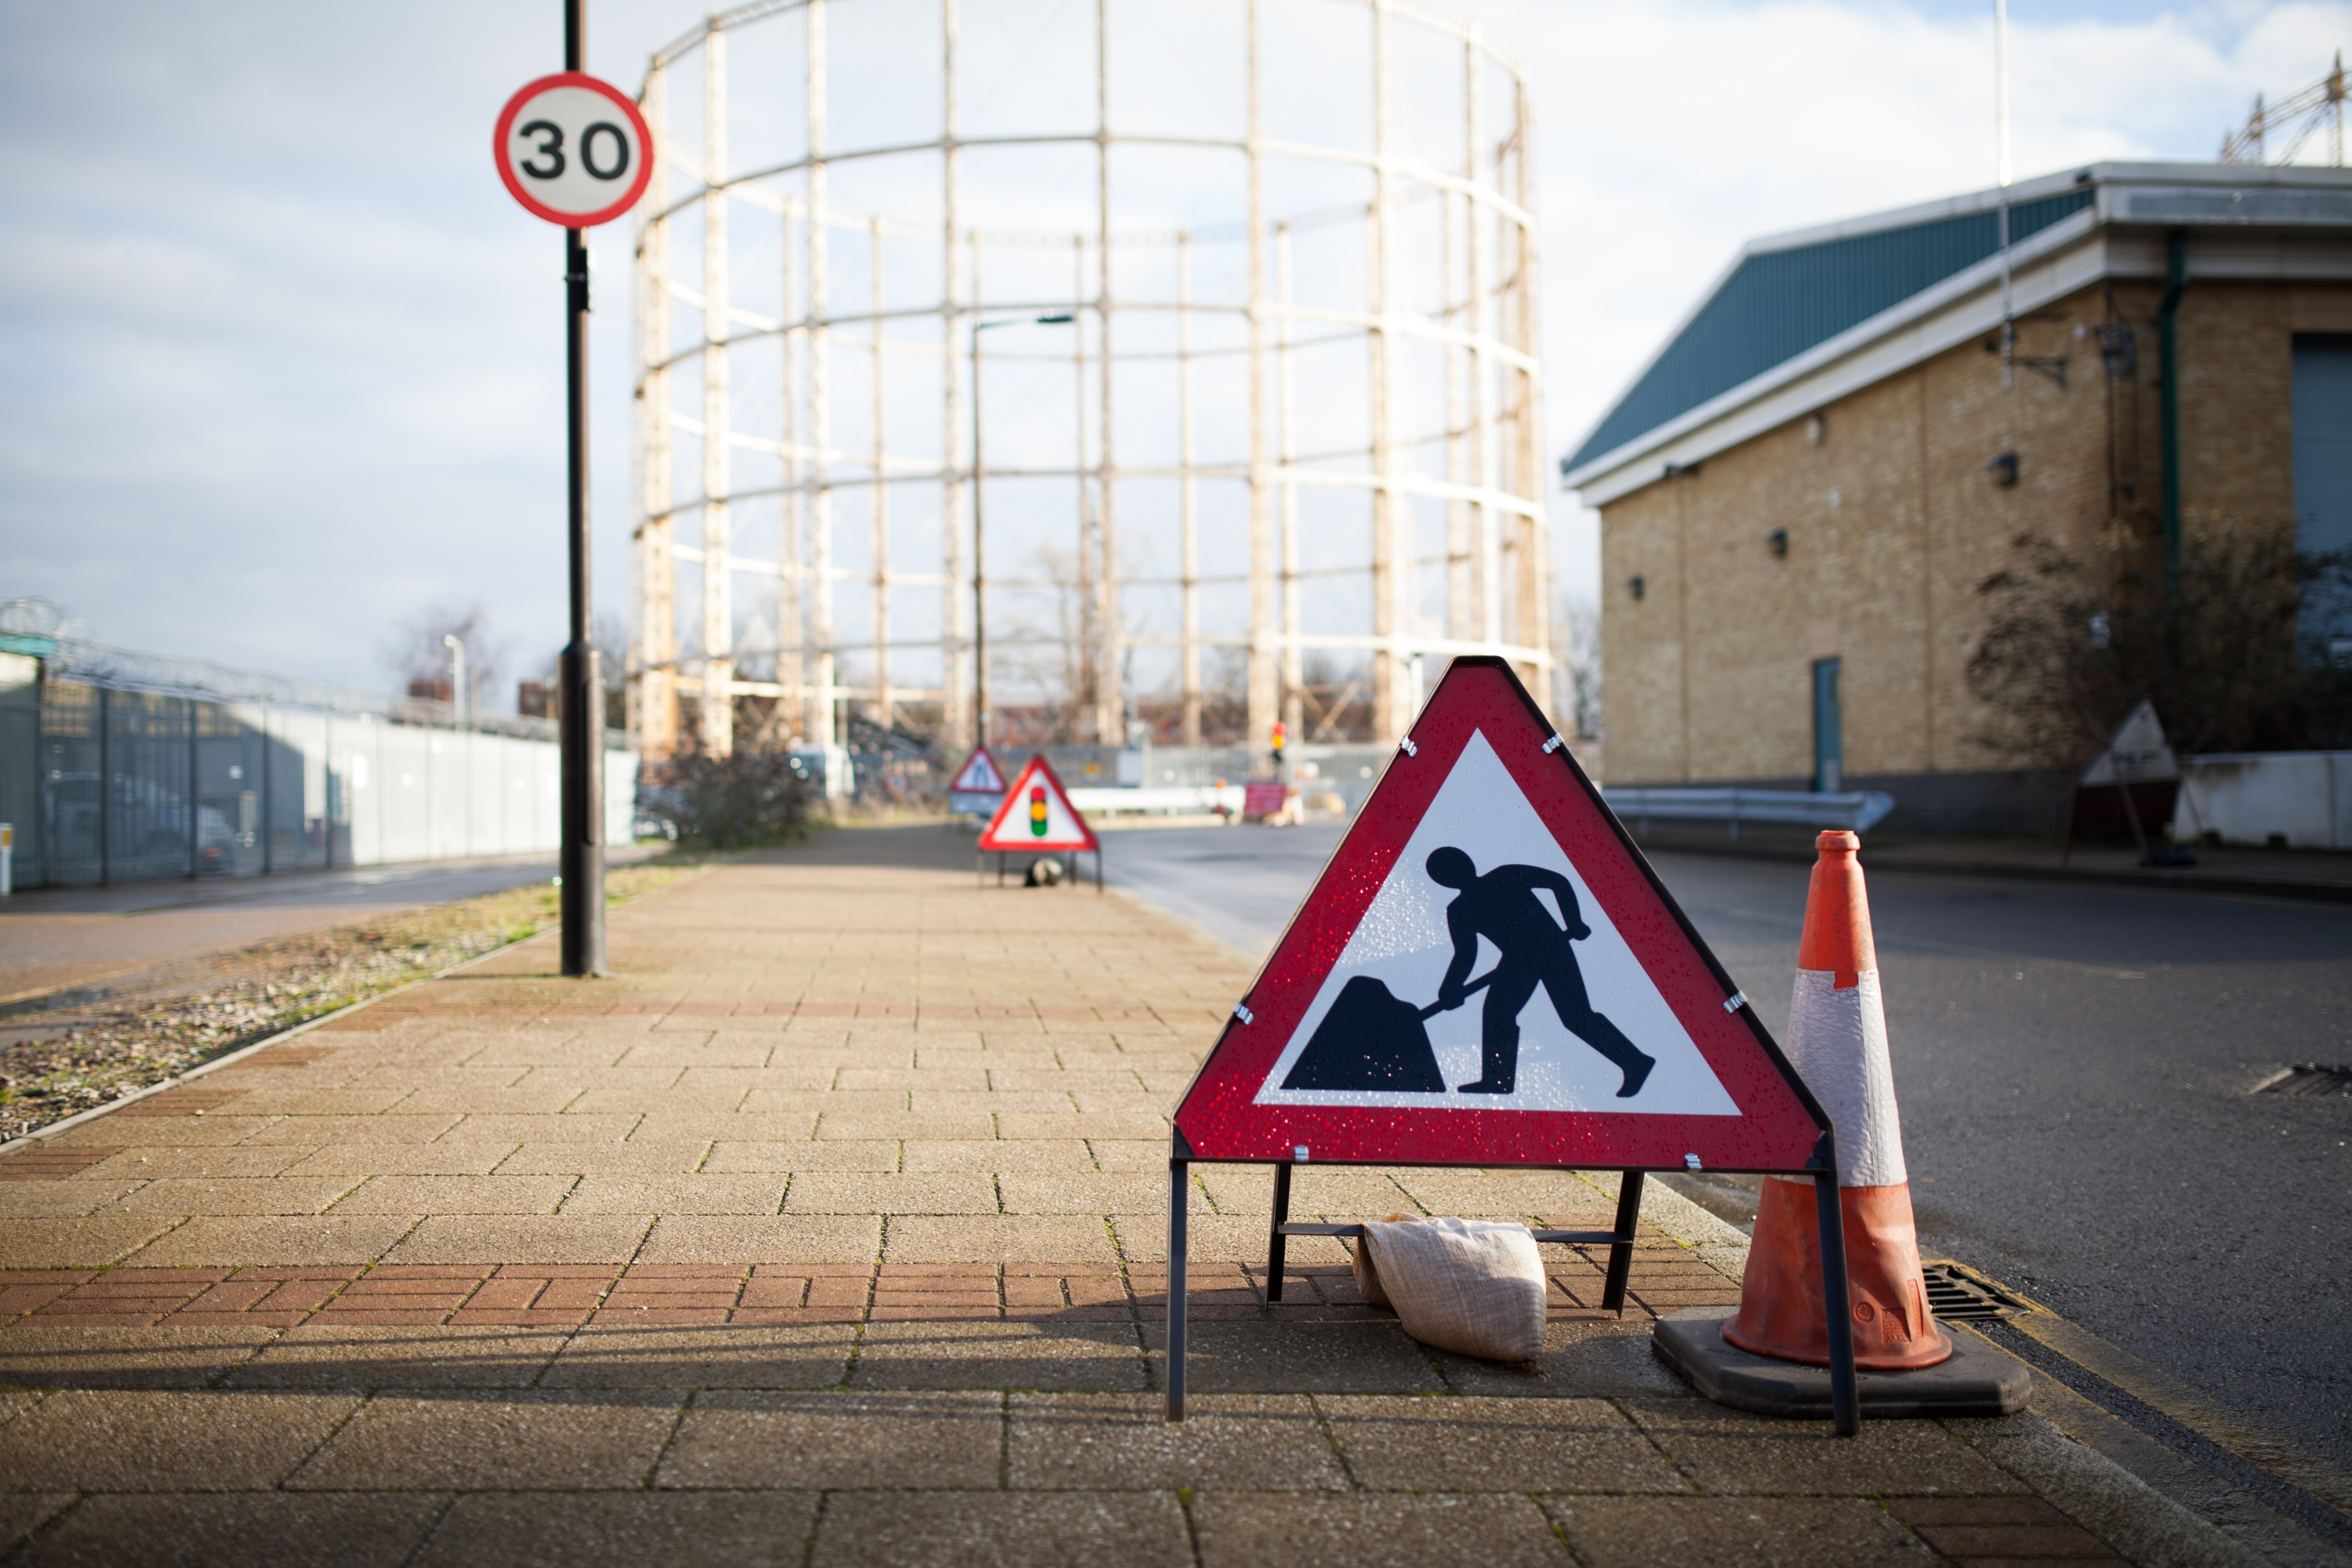 London roadworks by Tom Page on Flickr